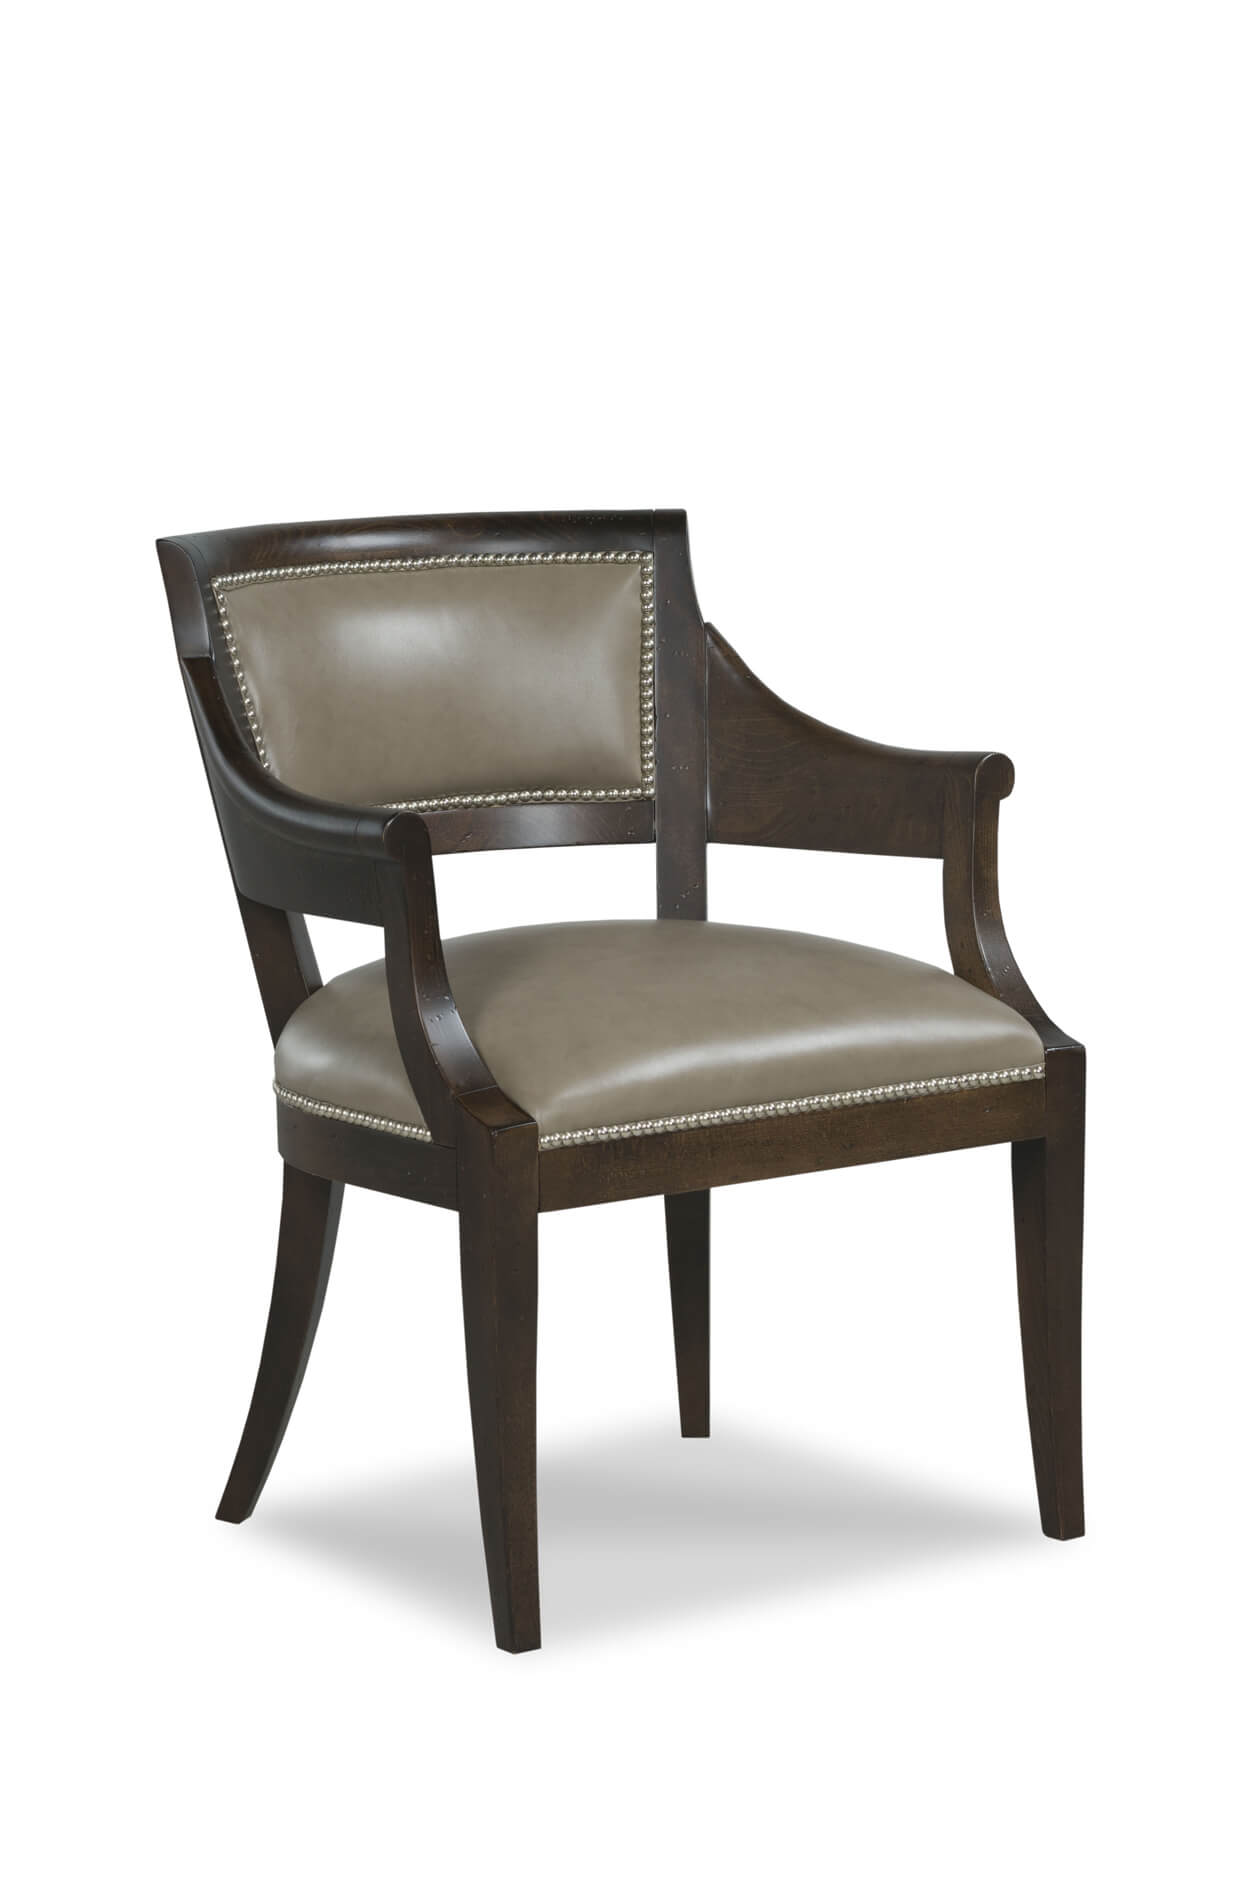 Fairfield's Gilroy Upholstered Dining Arm Chair